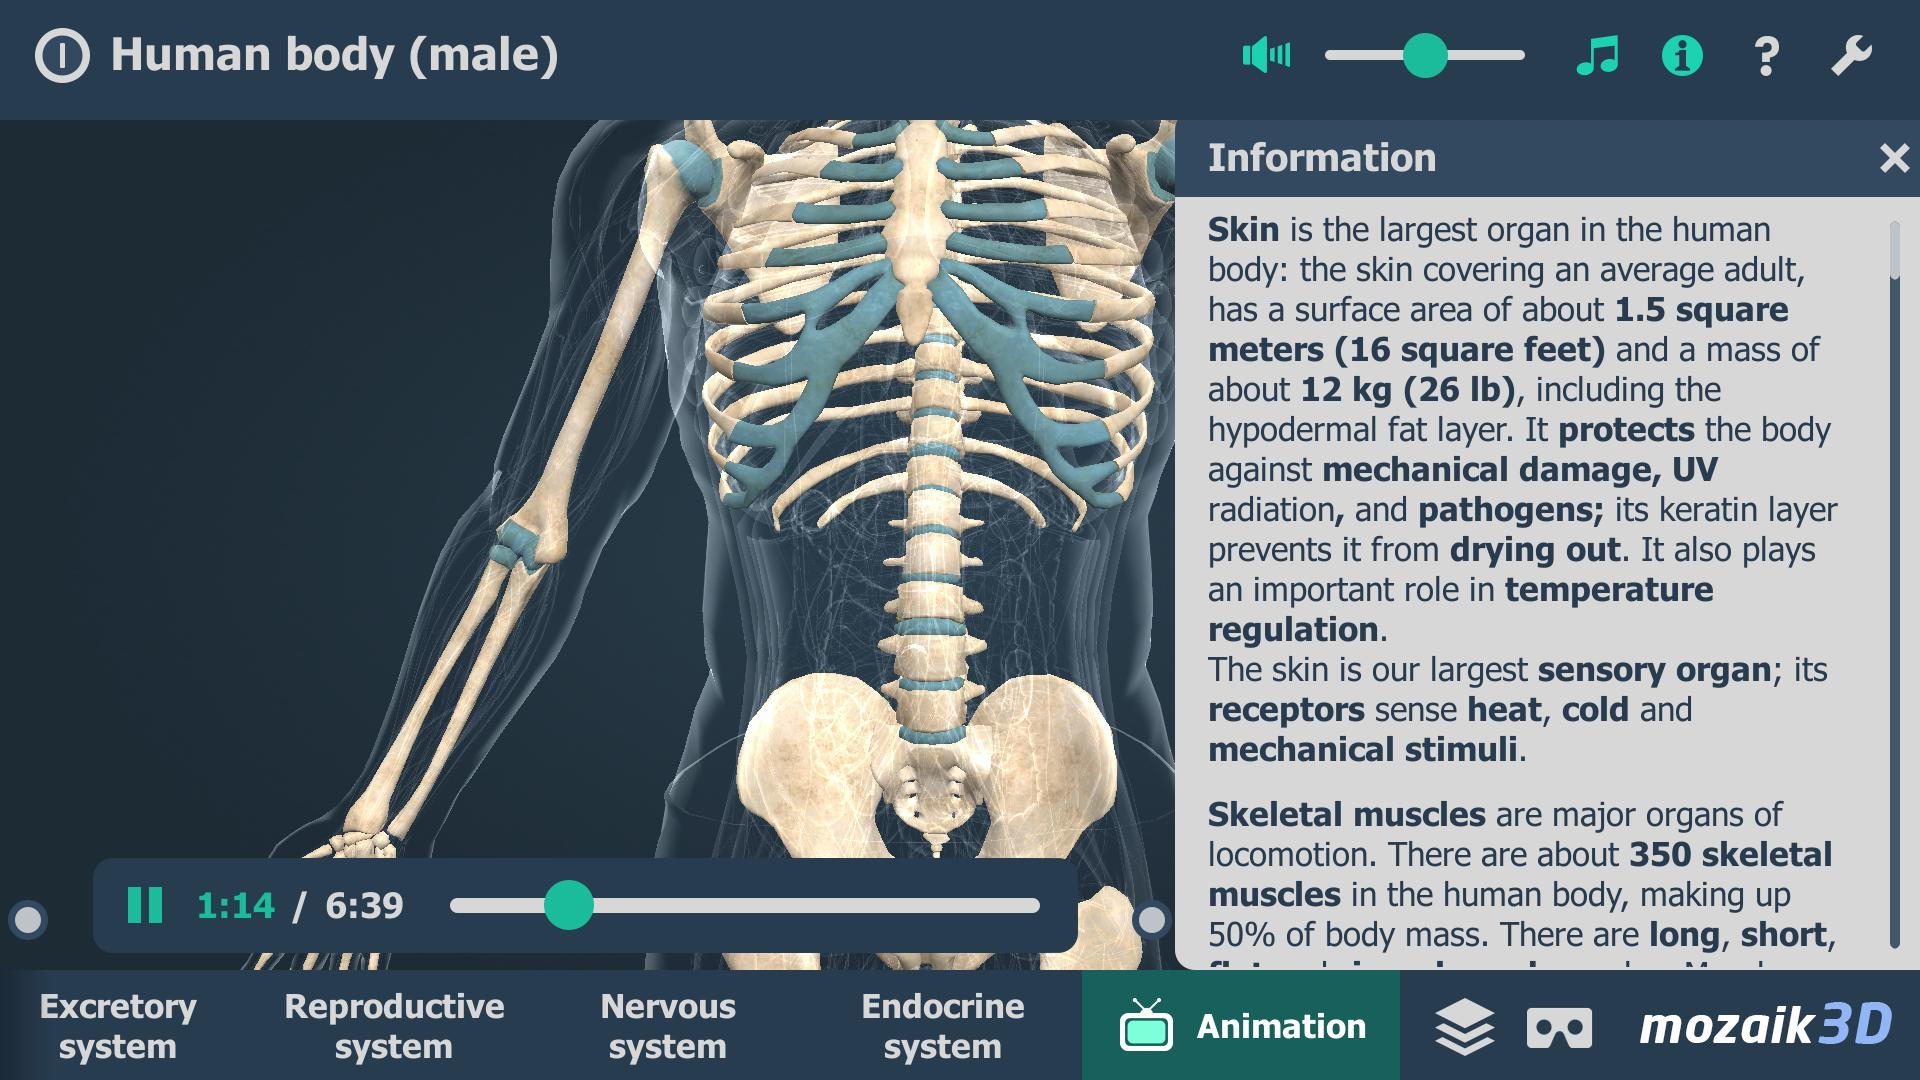 Human body (male) educational VR 3D for Android - APK Download